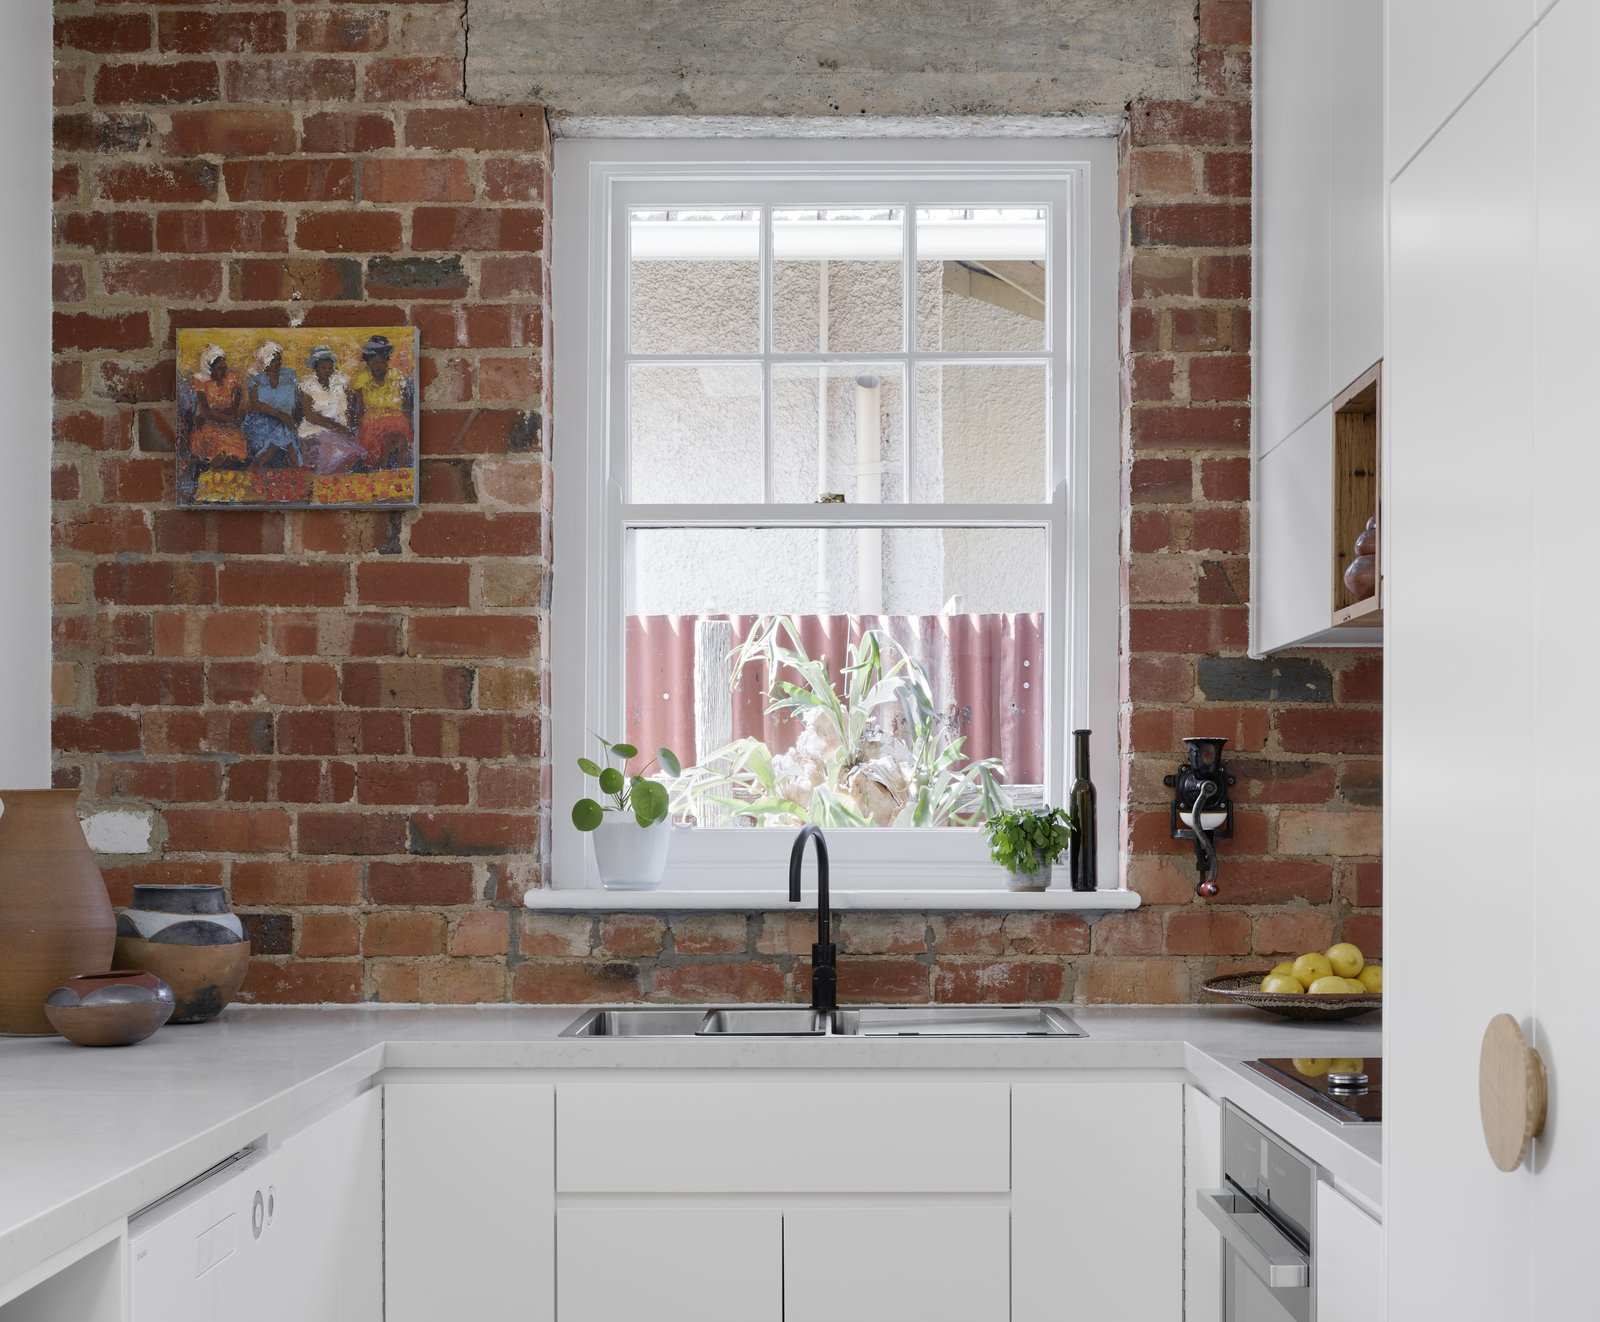 Kitchen, Engineered Quartz Counter, Brick Backsplashe, Range Hood, Dishwasher, White Cabinet, and Cooktops The clean line of Caesarstone bench contracts with the exposed textured brickwork of the original building fabric , now a feature of the kitchen    Preston 1